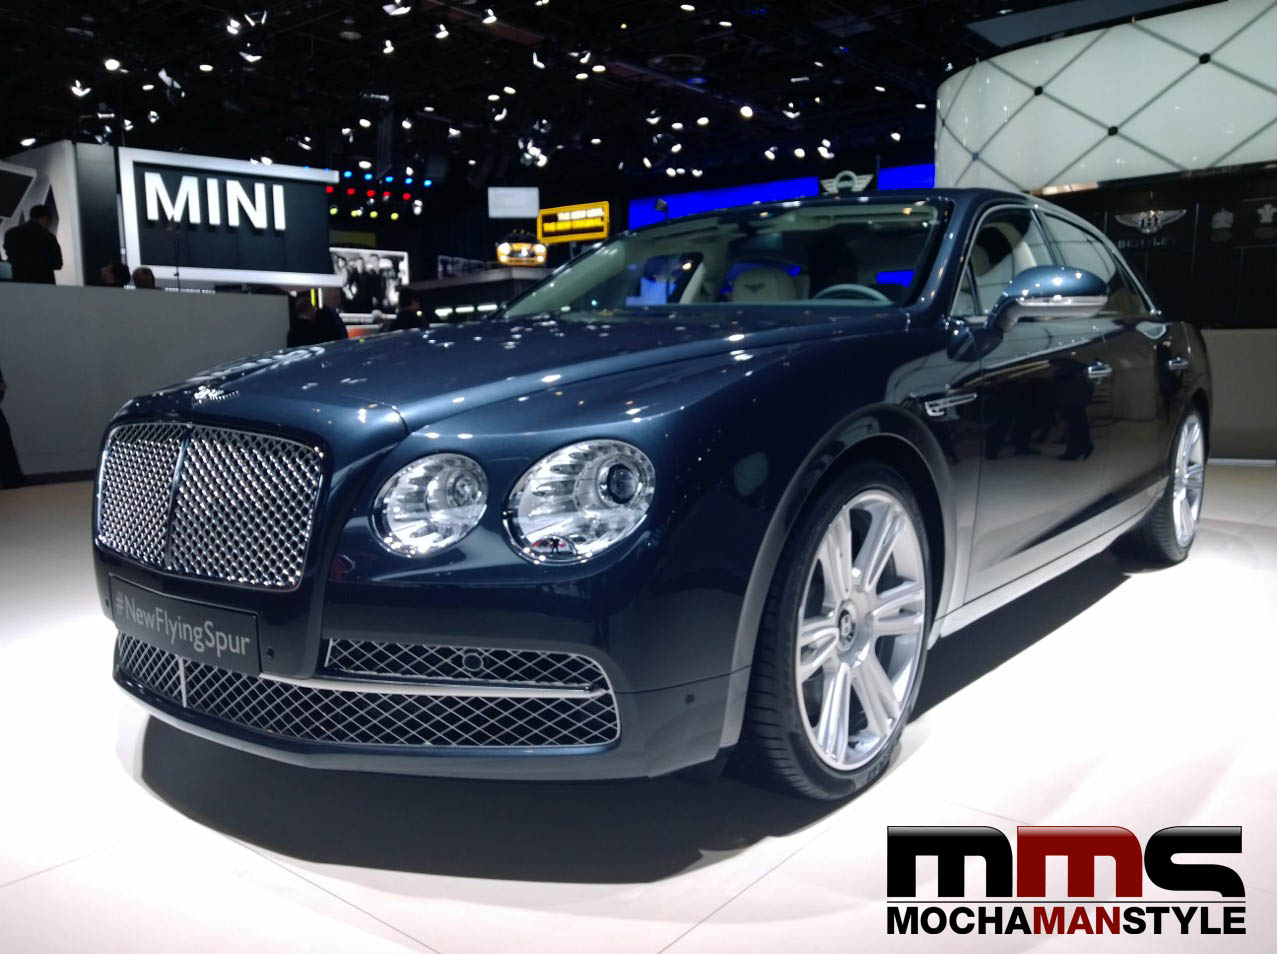 TOP VEHICLES AT THE NORTH AMERICAN INTERNATIONAL AUTO SHOW (NAIAS) – BENTLEY